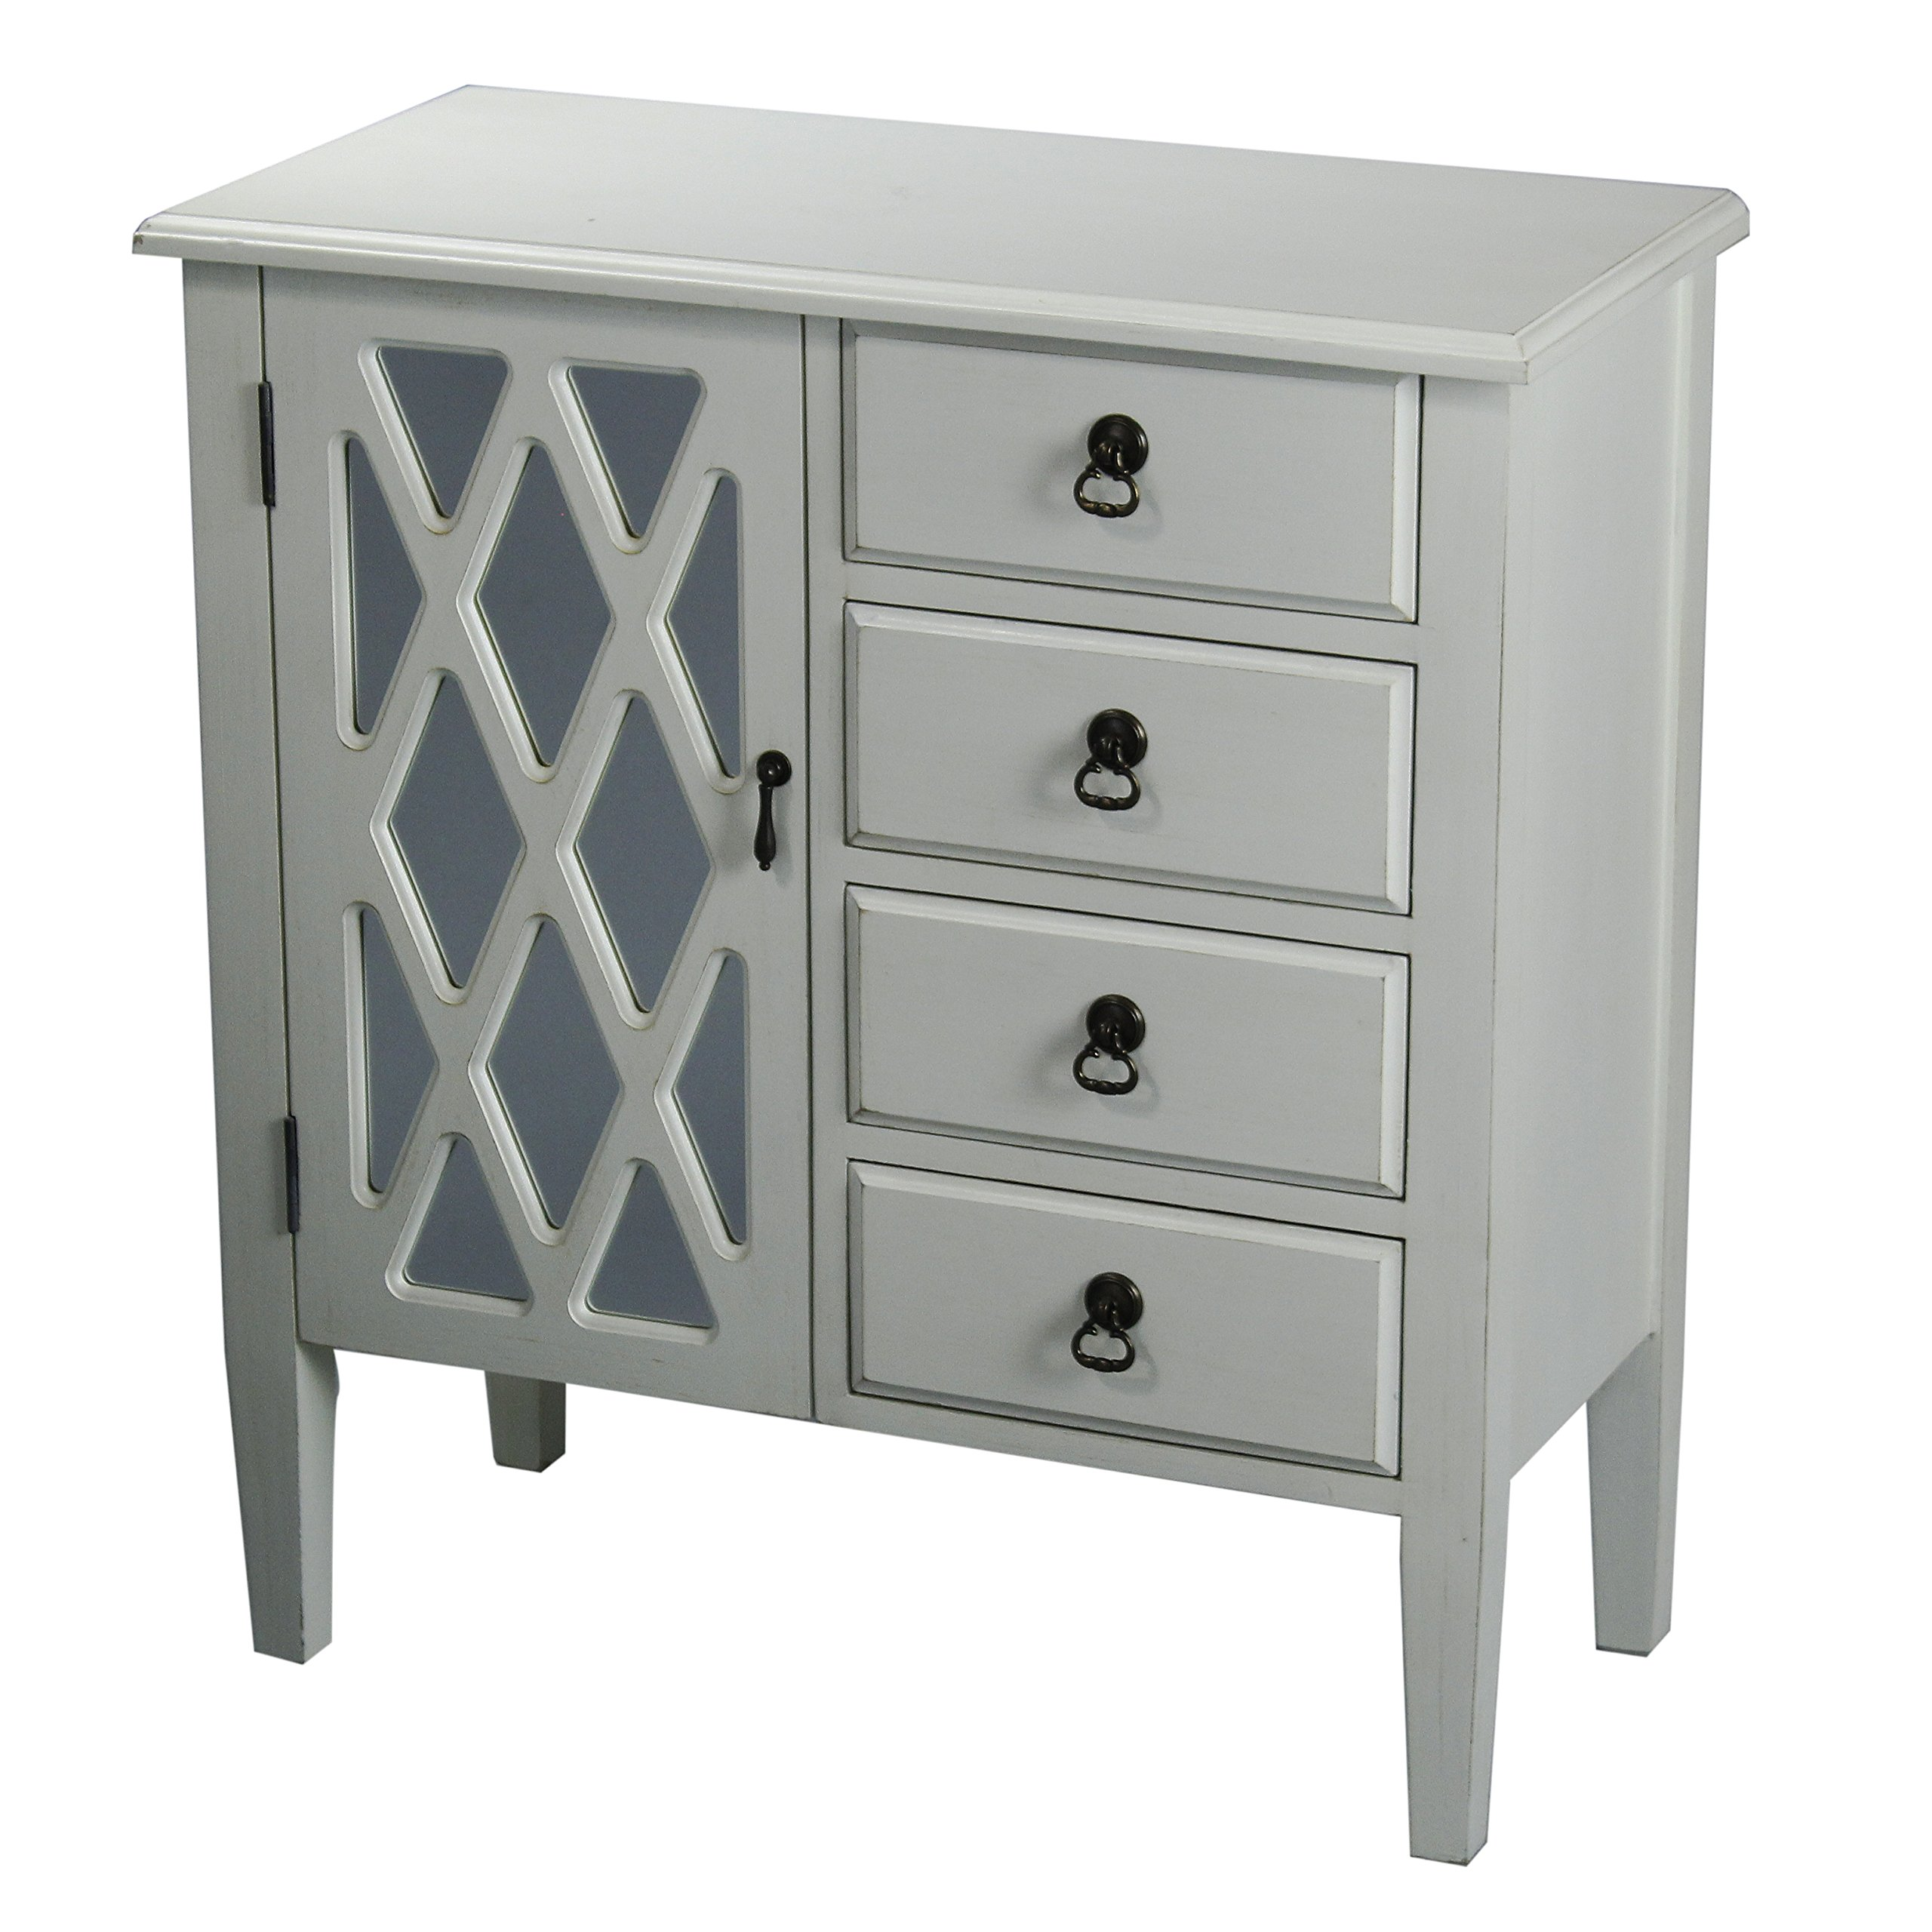 Heather Ann Creations 4 Drawer Wooden Accent Chest and Cabinet, Diamond Pattern Grille with Glass Backing, 32''H x 29.5''W, Antique White